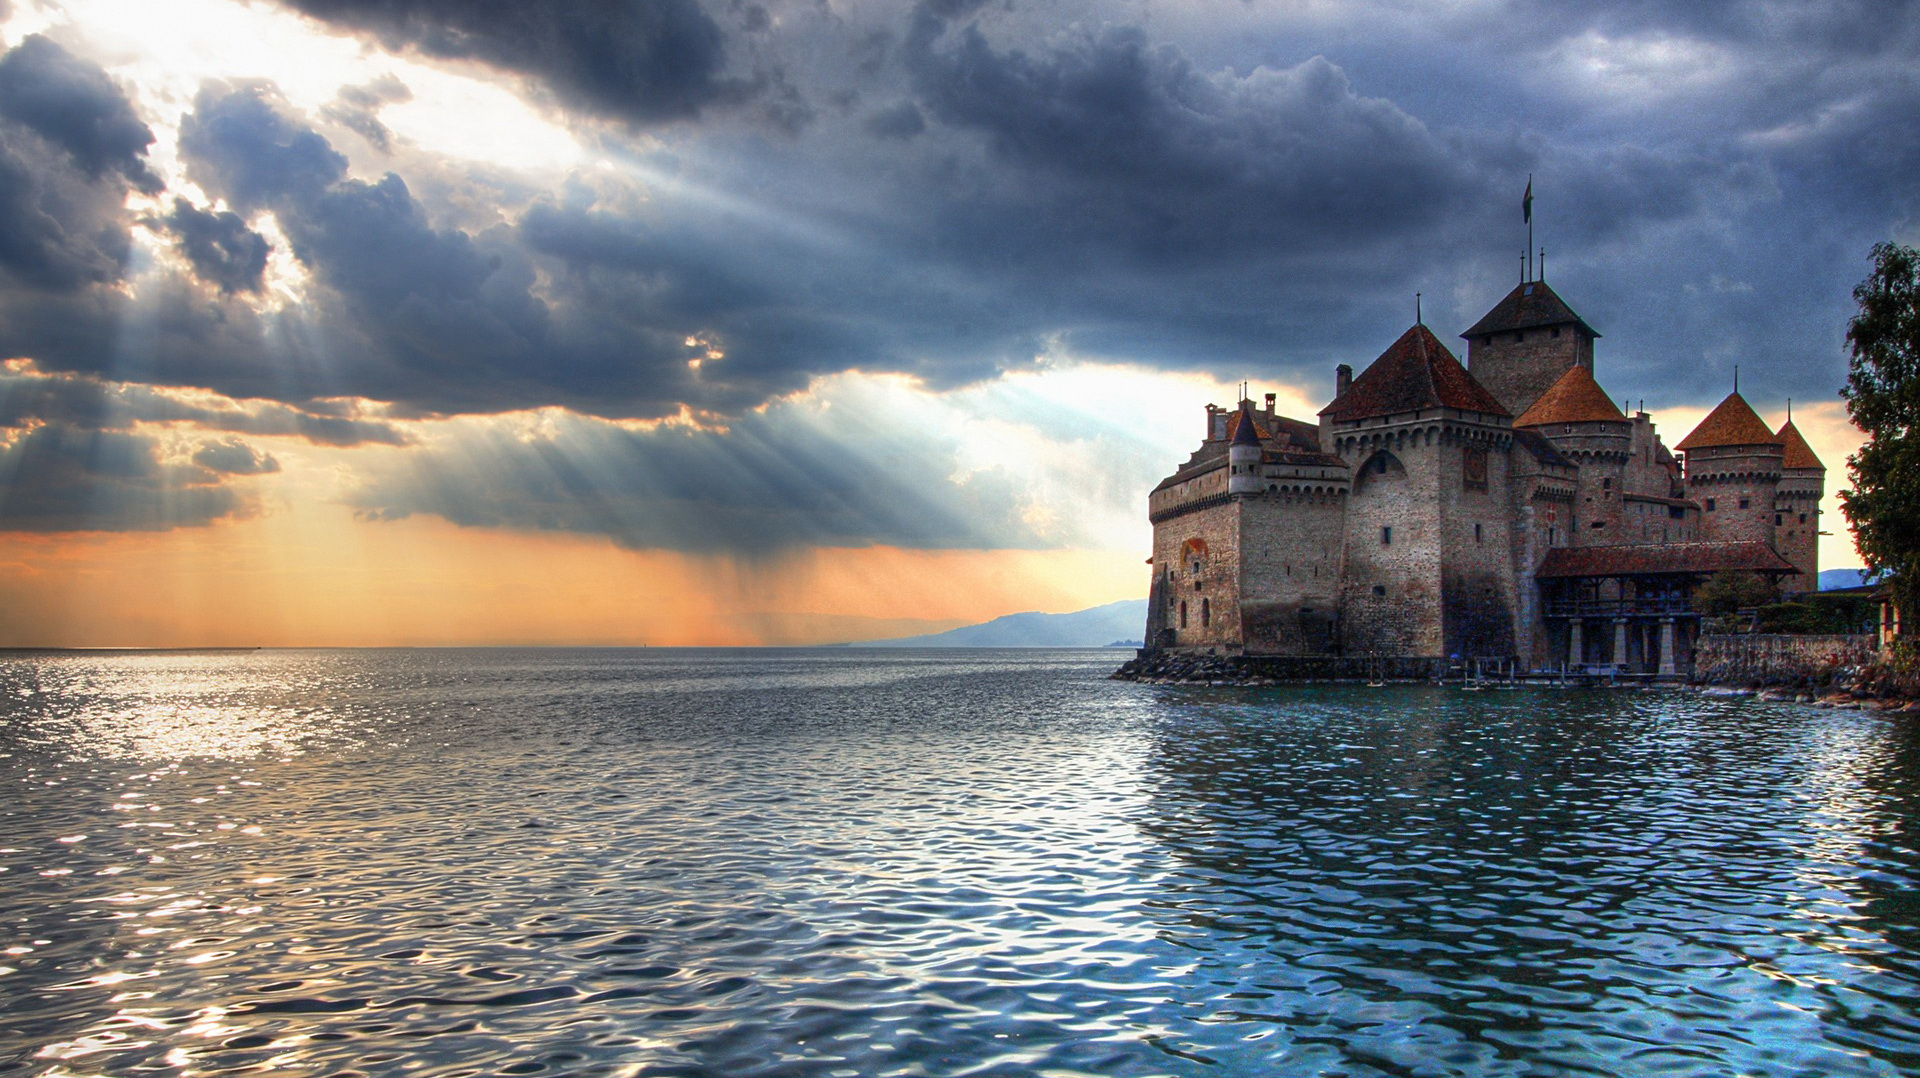 click to free download the wallpaper--beautiful pictures of nature - An Old Castle by the Seaside, Thick Clouds Over It, Sunlight Breaking in 1920X1080 free wallpaper download